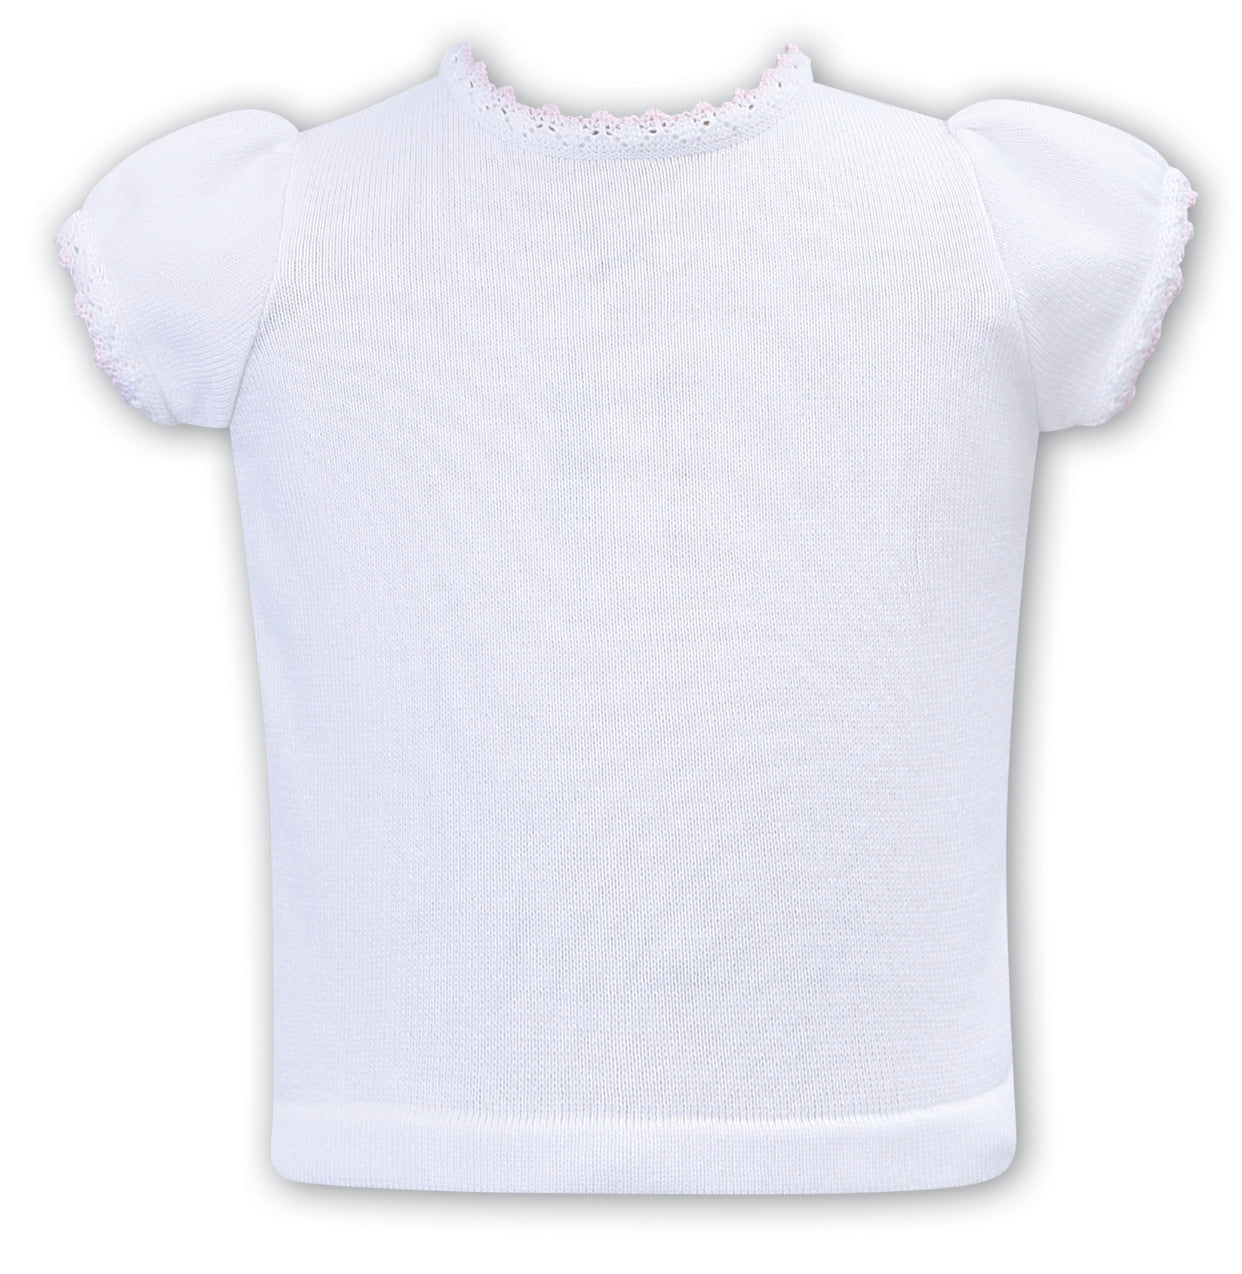 White Cotton Sweater Top - Pink Trim